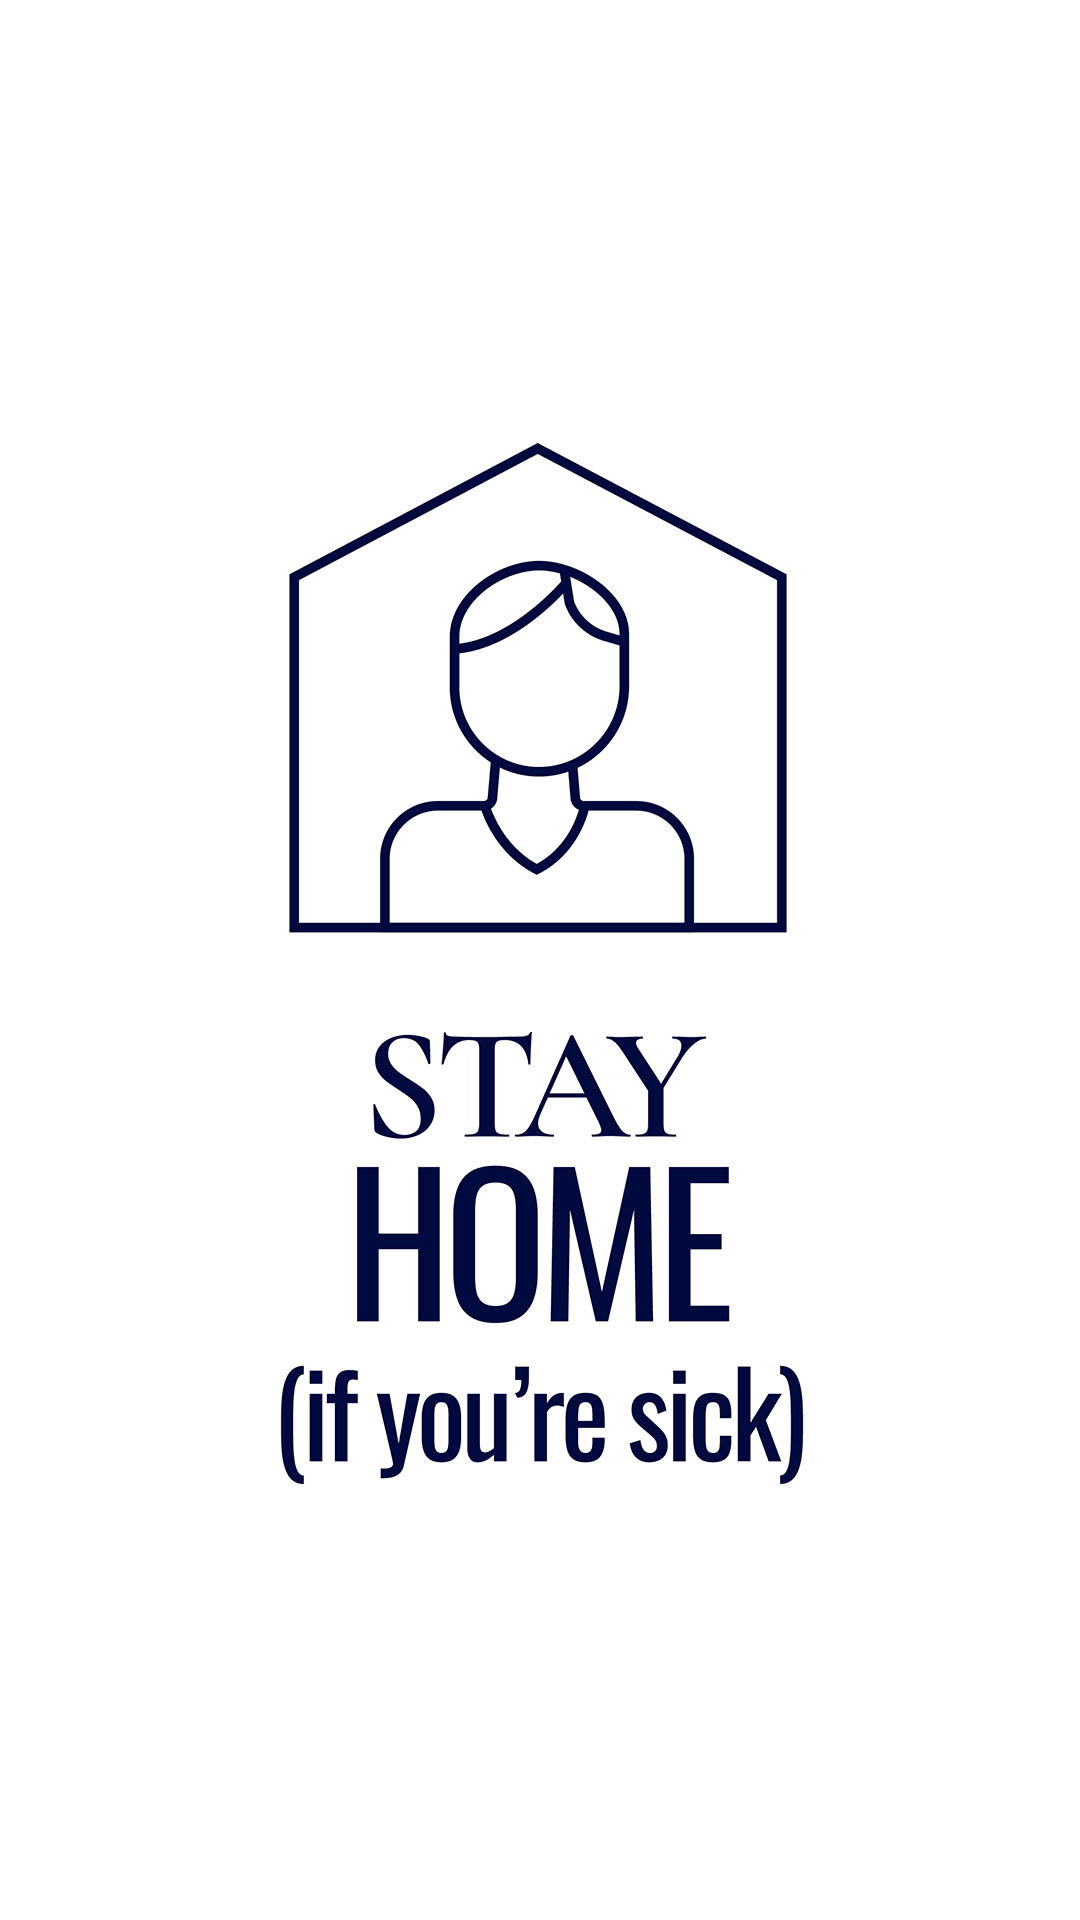 Stay home (if you're sick)